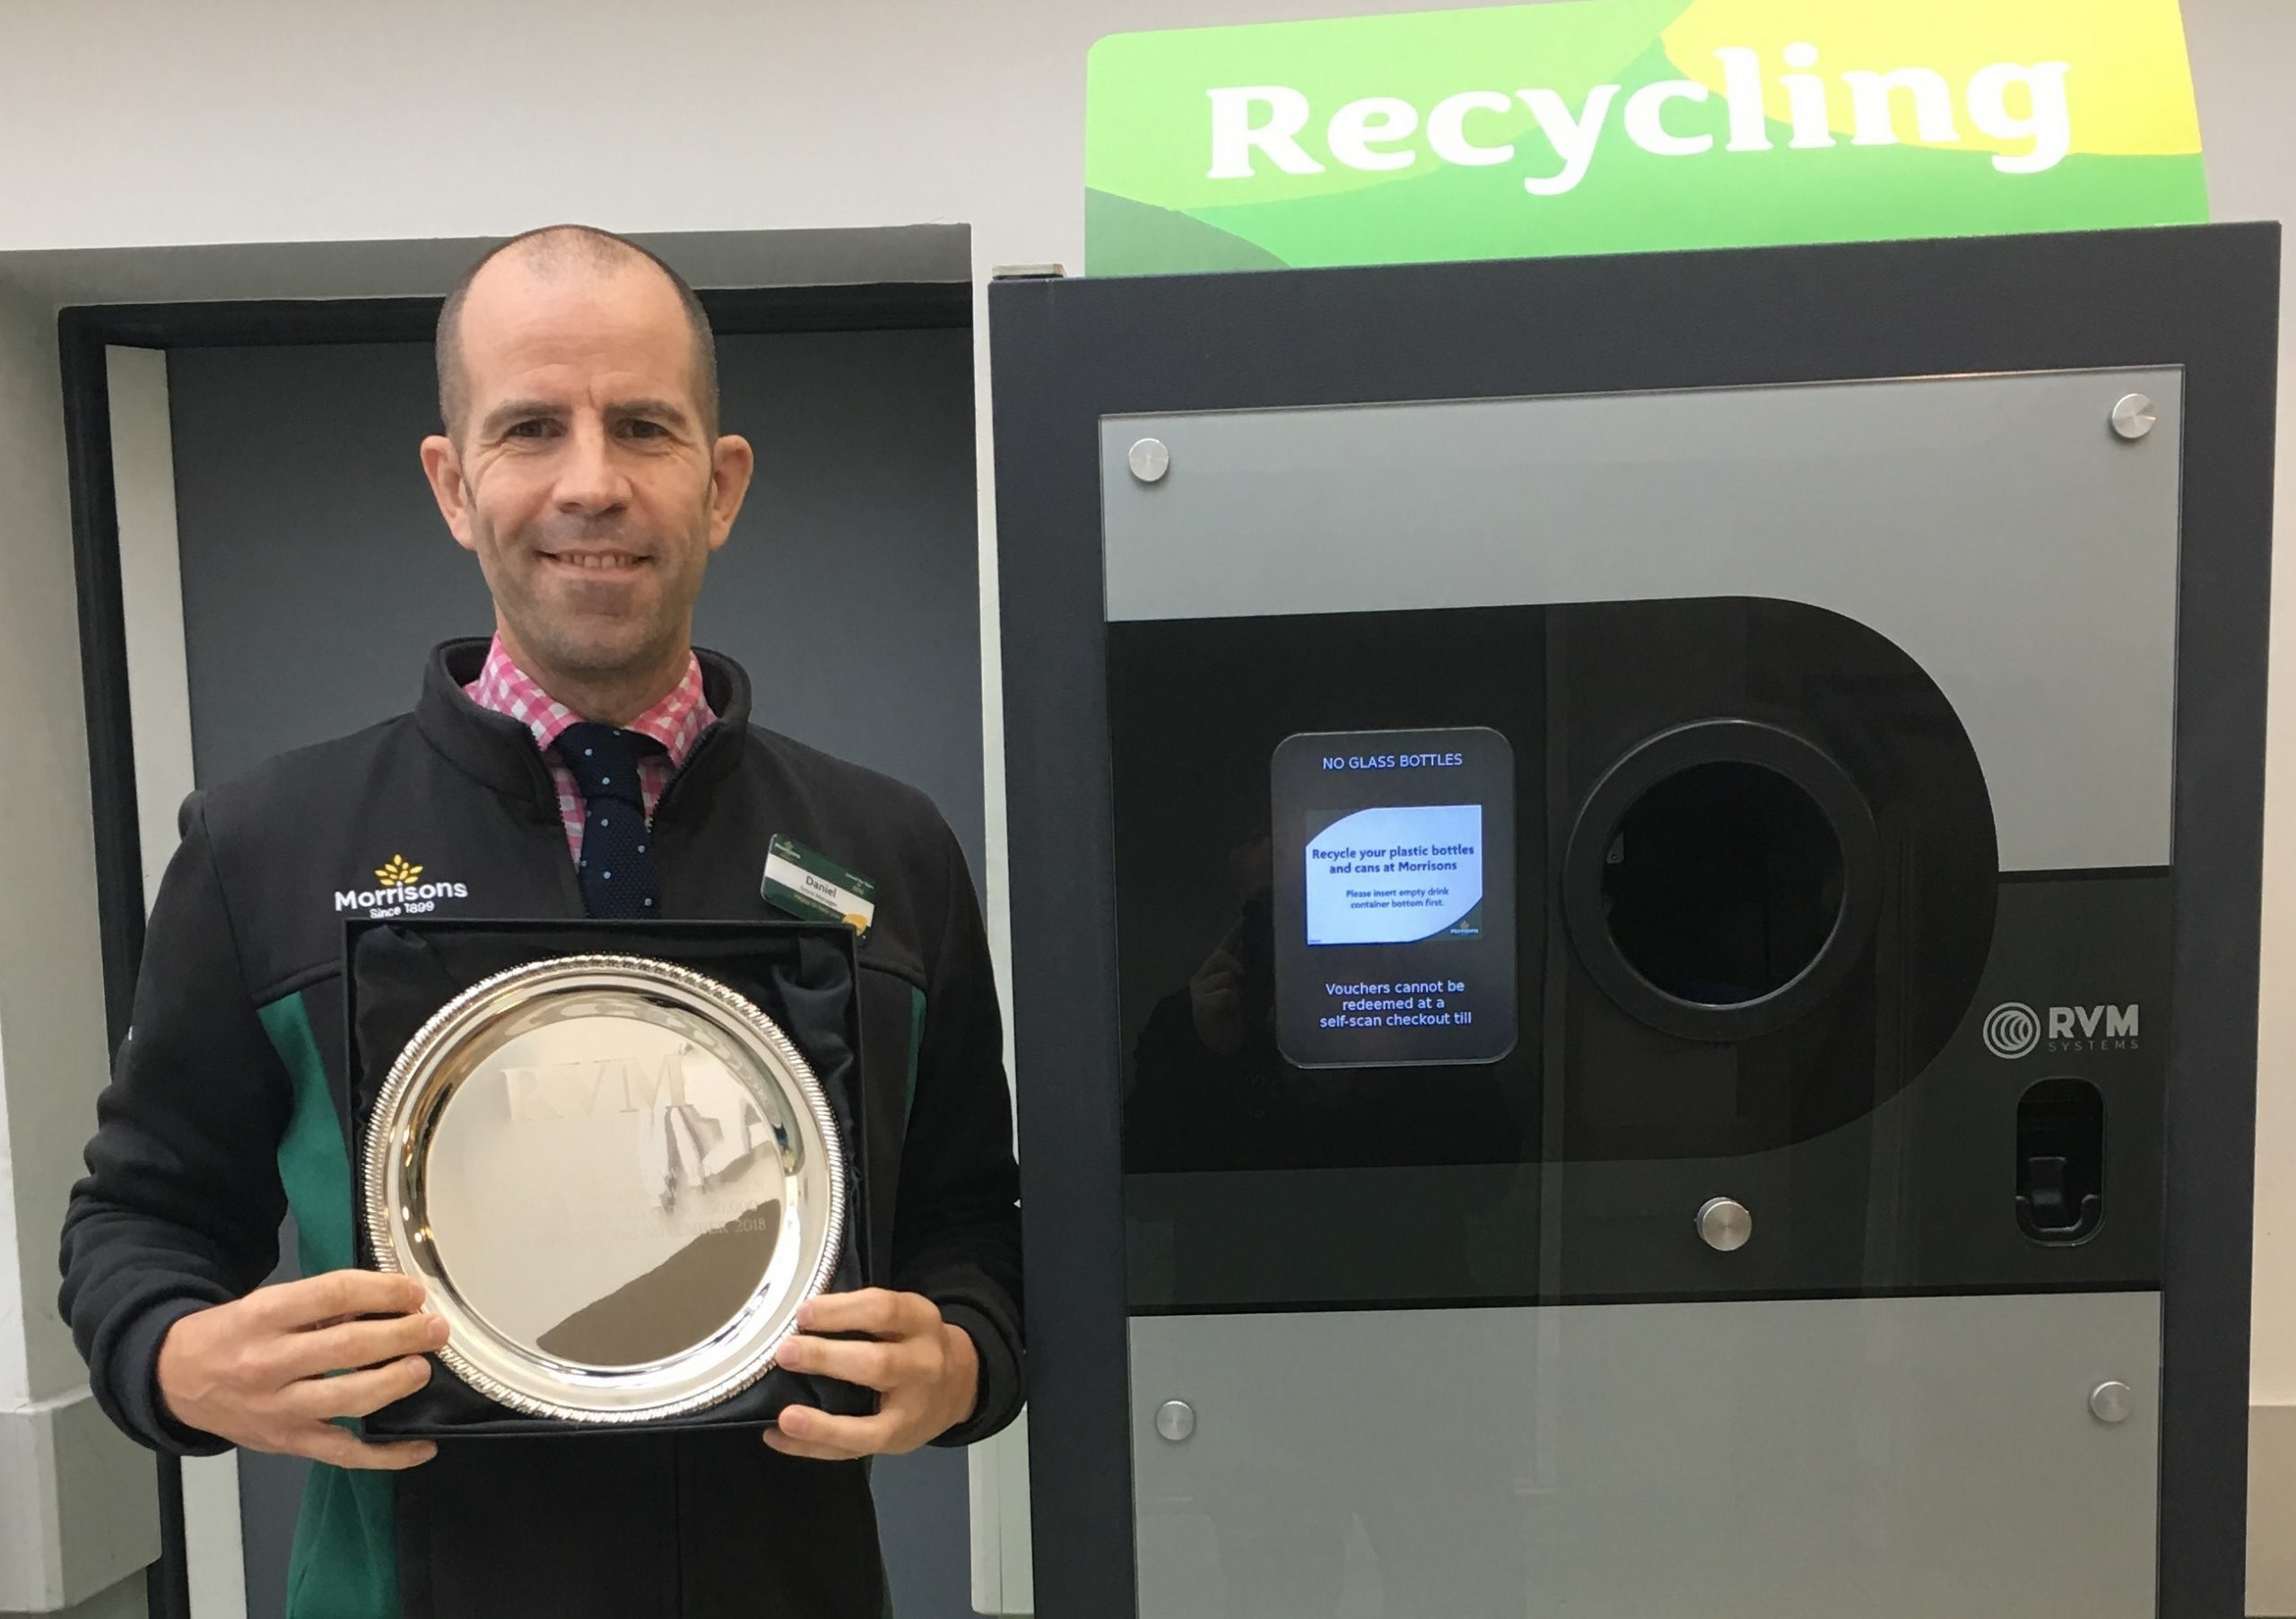 Morrisons Wood Green Store recycle over 250,000 used drink containers On the 9th of July 2019 RVM Systems presented an award to Morrisons Wood Green store manager Daniel Haffenden to celebrate that the store has recycled over 250,000 plastic drink bottles and drink cans since the 2nd of November 2018.